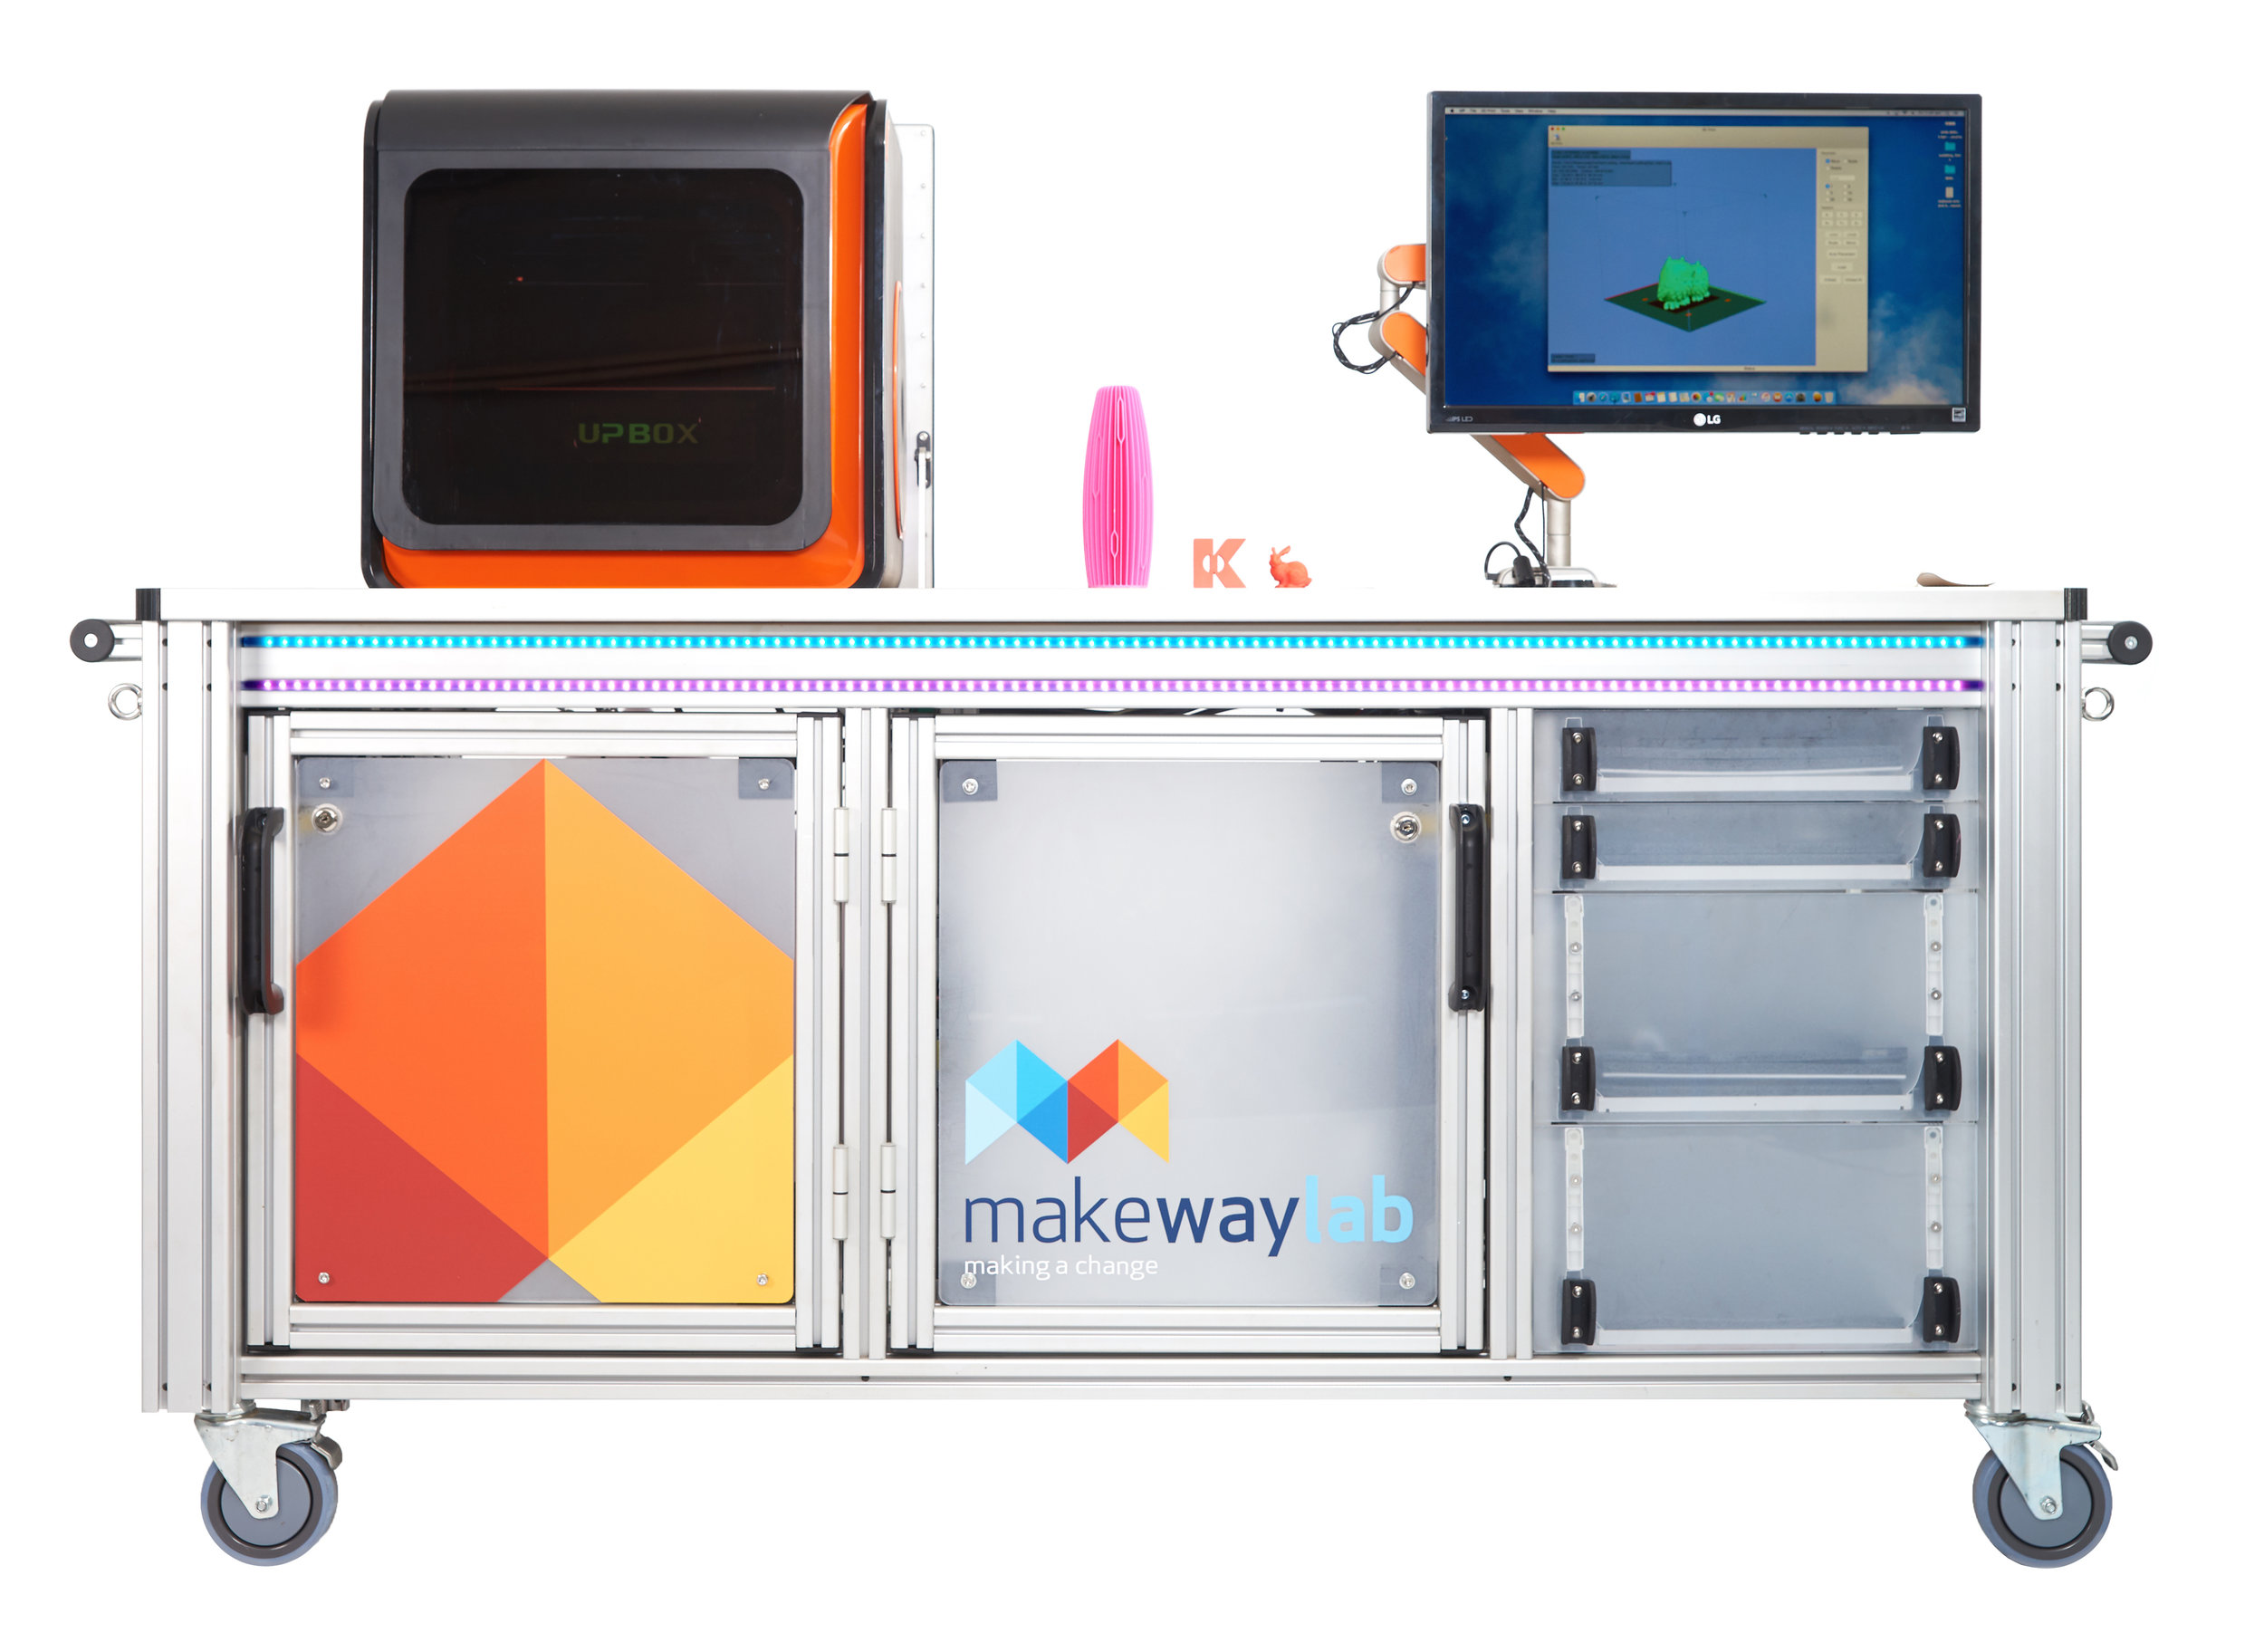 makeway Lab · hospital makerspace - The Makeway Lab · Hospital Makerspace is a creative health initiative being developed by Blue Sky View and researched by John Waldron through the Queensland University of Technology (QUT).The Makeway Lab provides patient access to innovative technology and participatory programs to improve their health and well being.The Hospital Makerspace is a mobile facility equipped with digital design and fabrication technology such as, 3D printers, digital scanners and cutters that participant can interact with, to learn and create interesting things.In 2019 a research project will take place with 15 to 20 dialysis patients on the Sunshine Coast to determine the benefits of the Makeway Lab in the hospital environment.